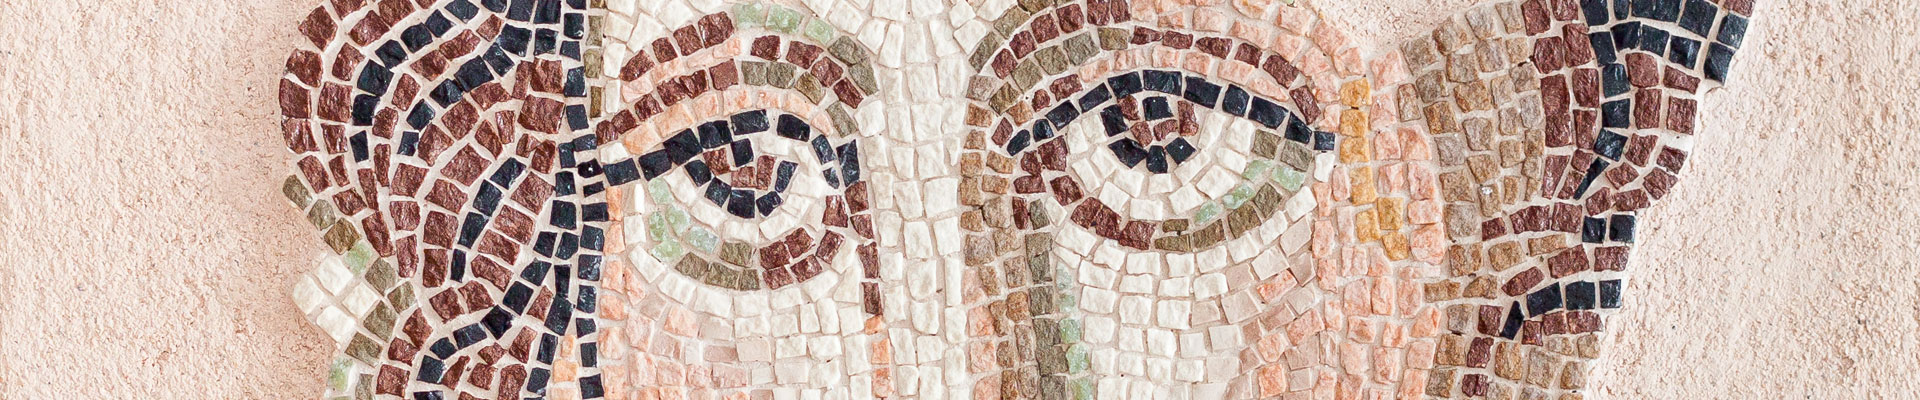 Copies of Antique Mosaics